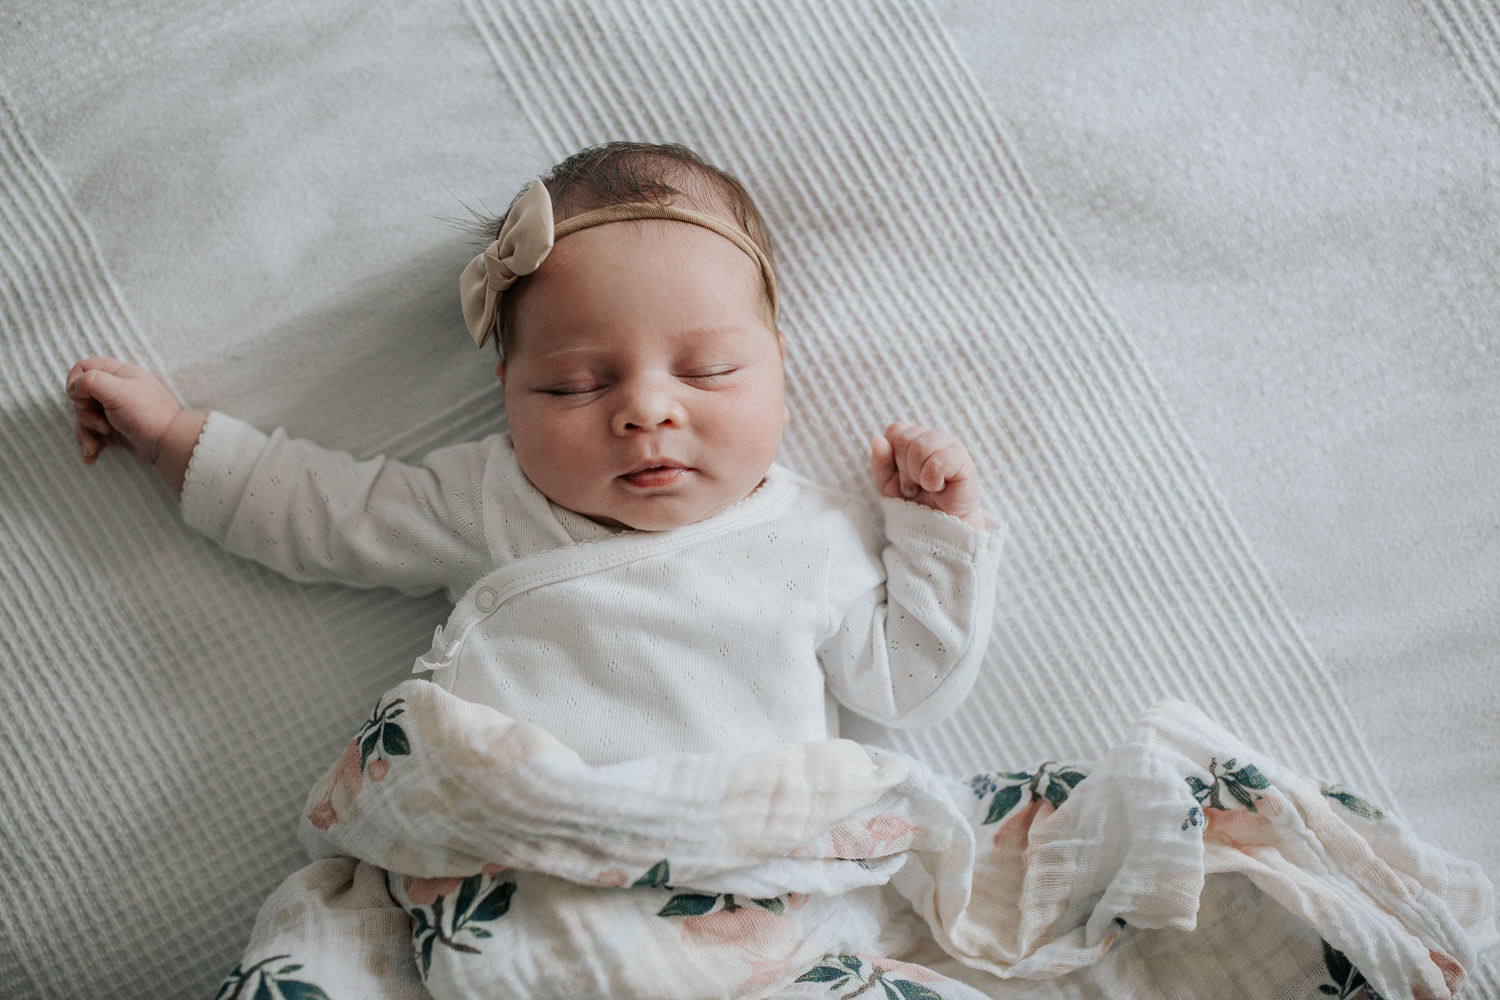 2 week old baby girl with dark hair in white onesie lying on swaddle with soft pink flowers, wearing bow headband asleep on bed, hands near face -Newmarket In-Home Photos